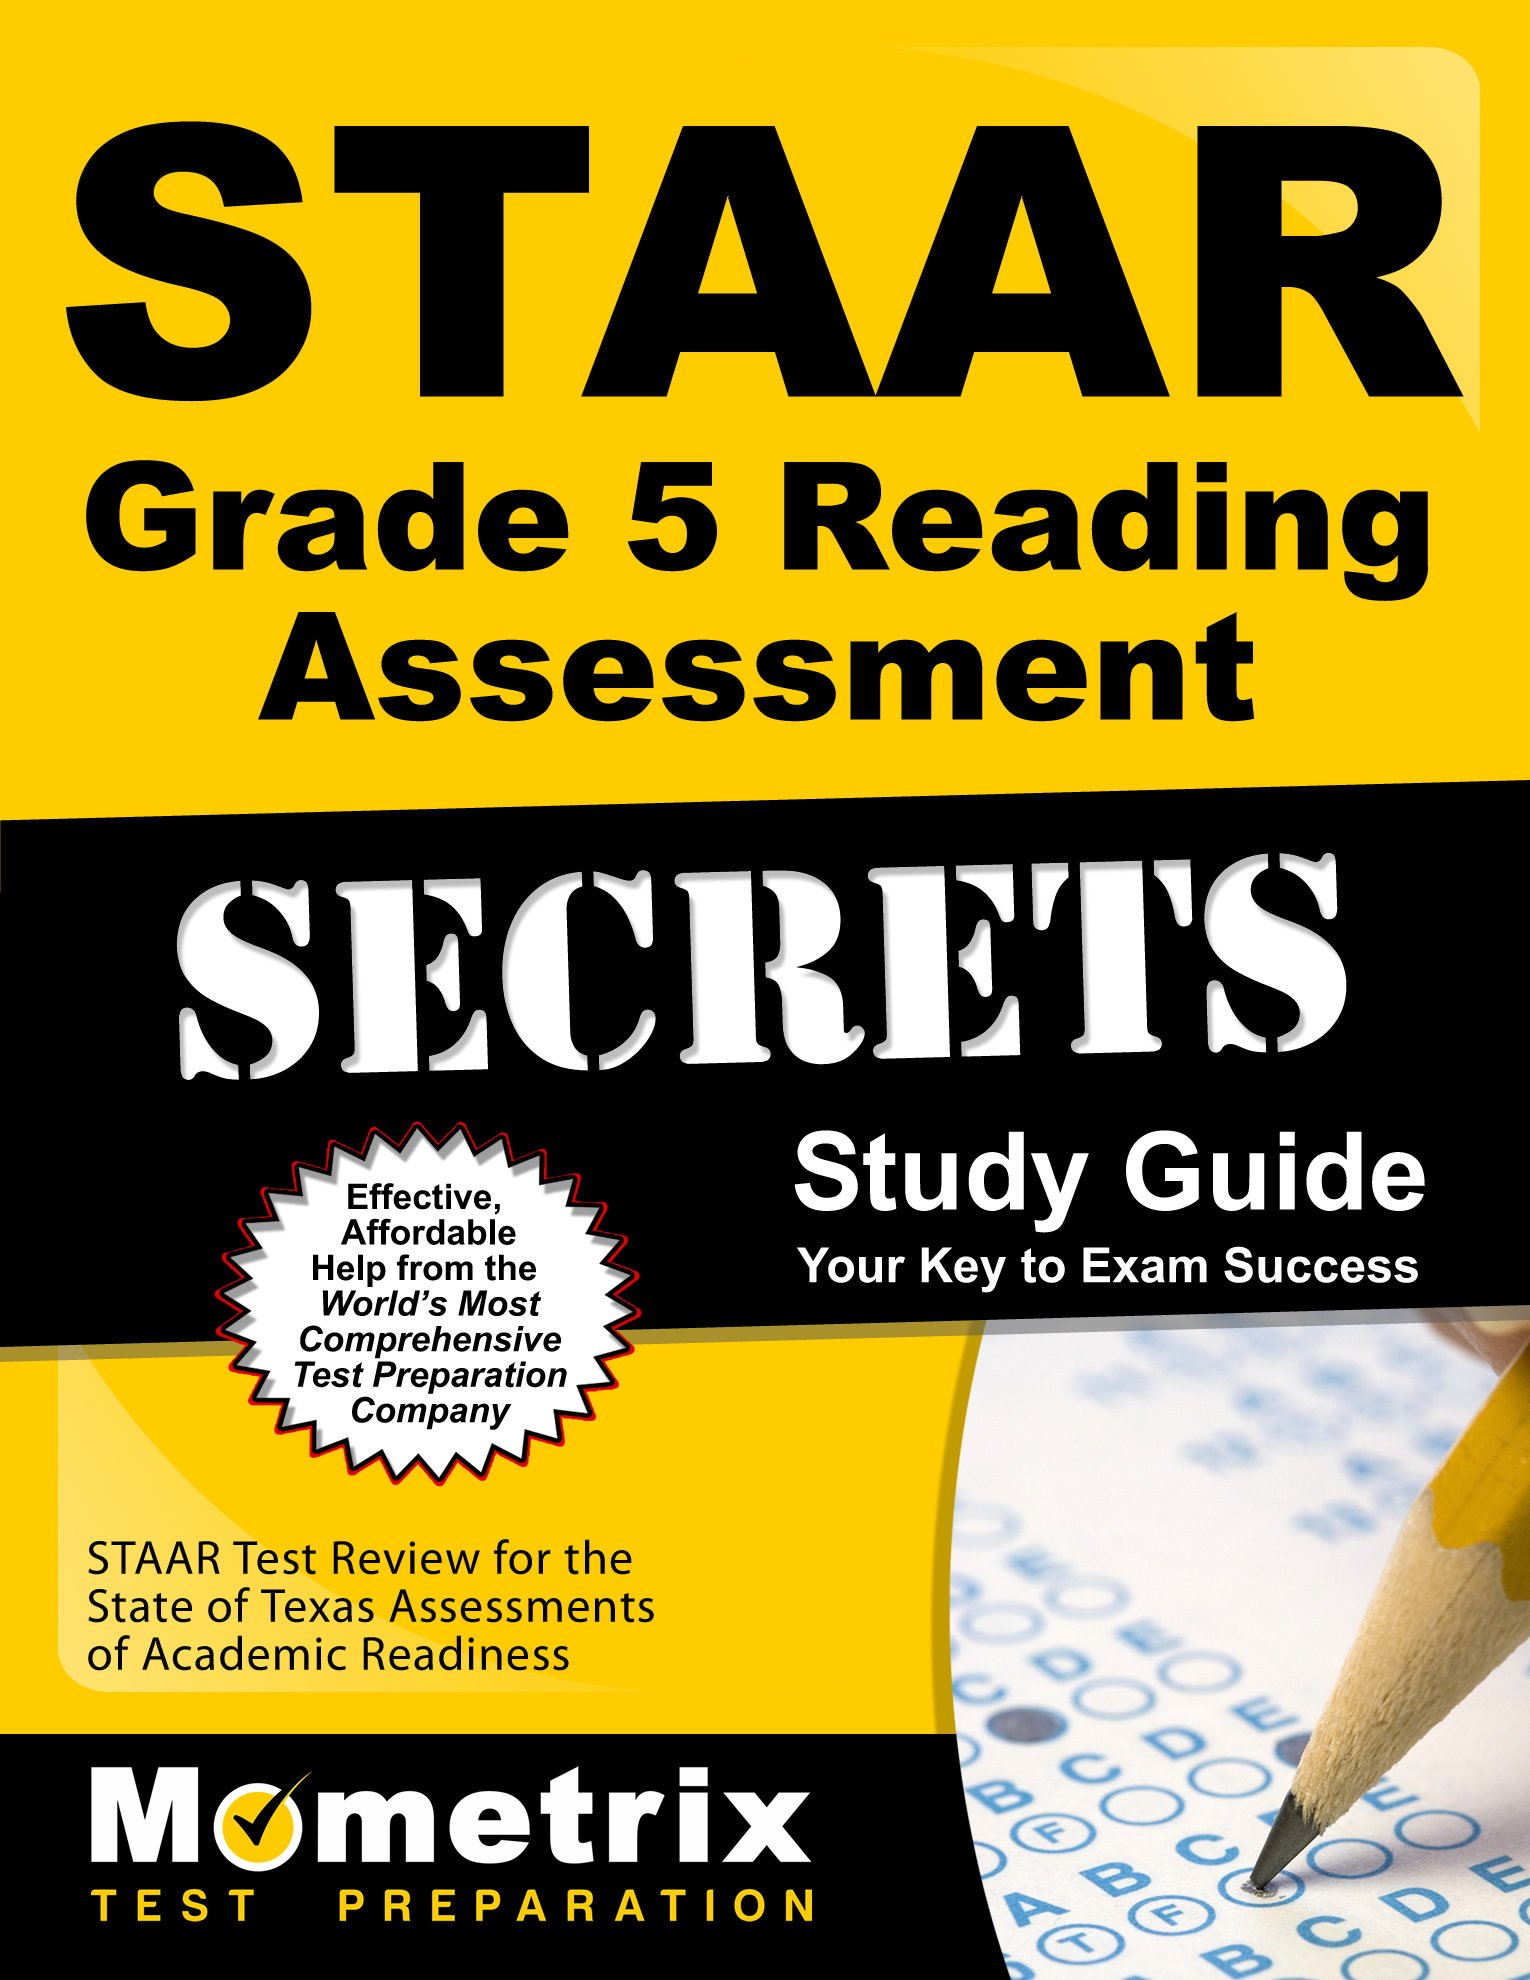 Staar grade 5 reading assessment secrets study guide staar test staar grade 5 reading assessment secrets study guide staar test review for the state of texas assessments of academic readiness mometrix secrets study fandeluxe Gallery